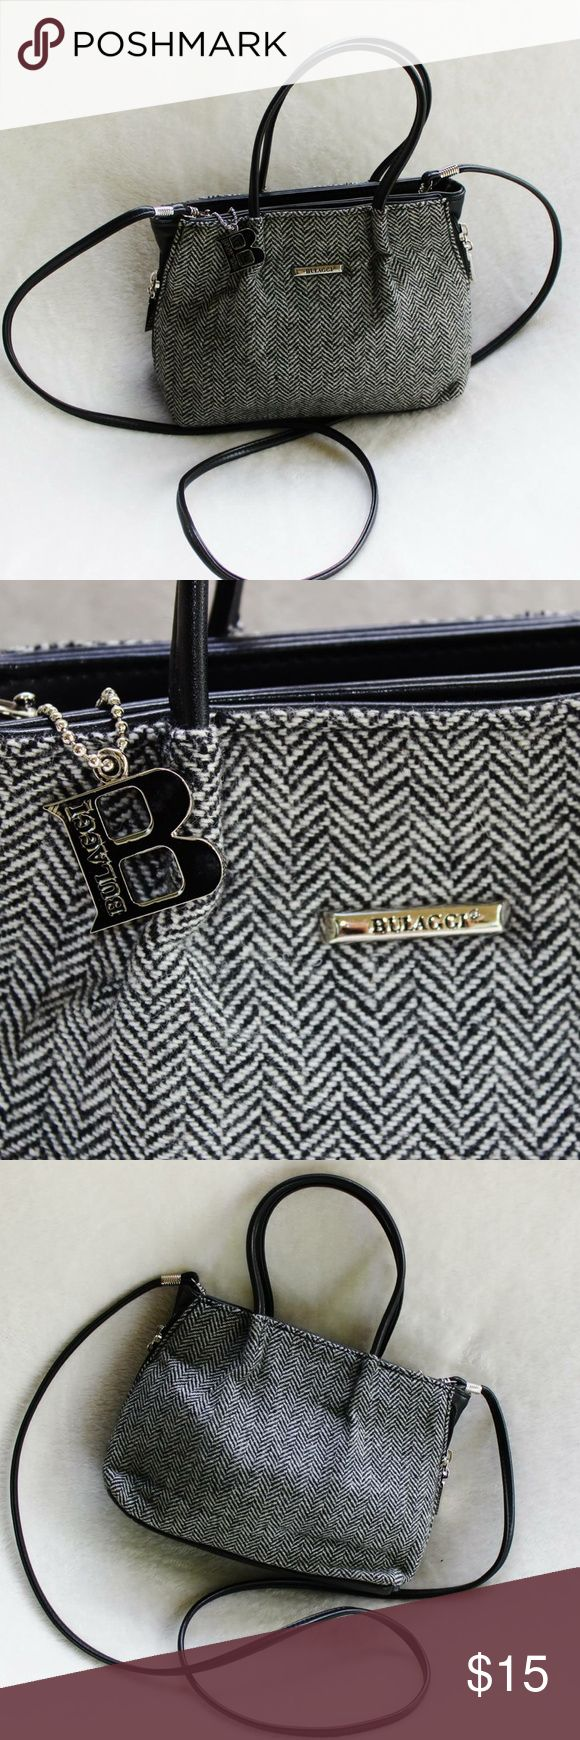 BULAGGI TWEED WOOL Crossbody / Handbag This adorable small bag is in excellent condition. It has been very gently loved. It's like new in condition. It has a detachable cross body strap that measures 49 inches. BULAGGI Bags Crossbody Bags